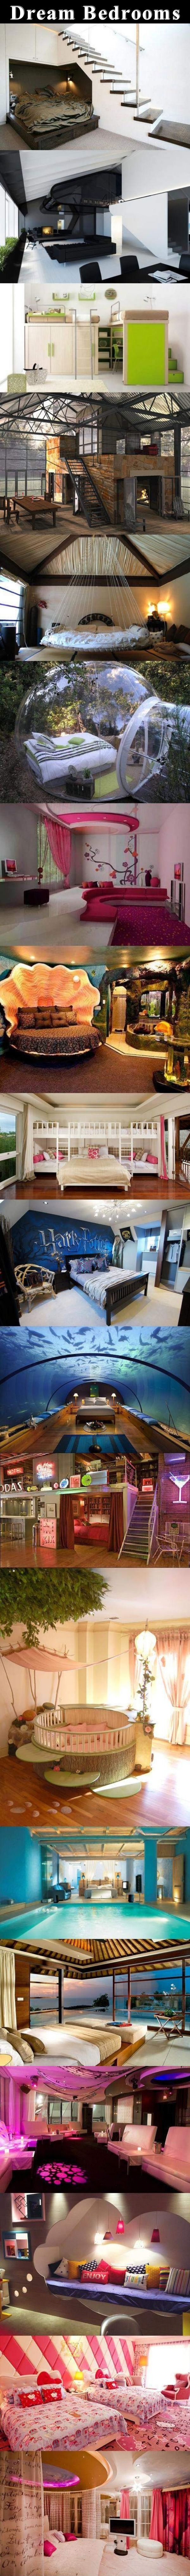 Dream Bedrooms bedroom home bed modern beds interior design home ideas home decorating modern bedrooms kids rooms small spaces small rooms